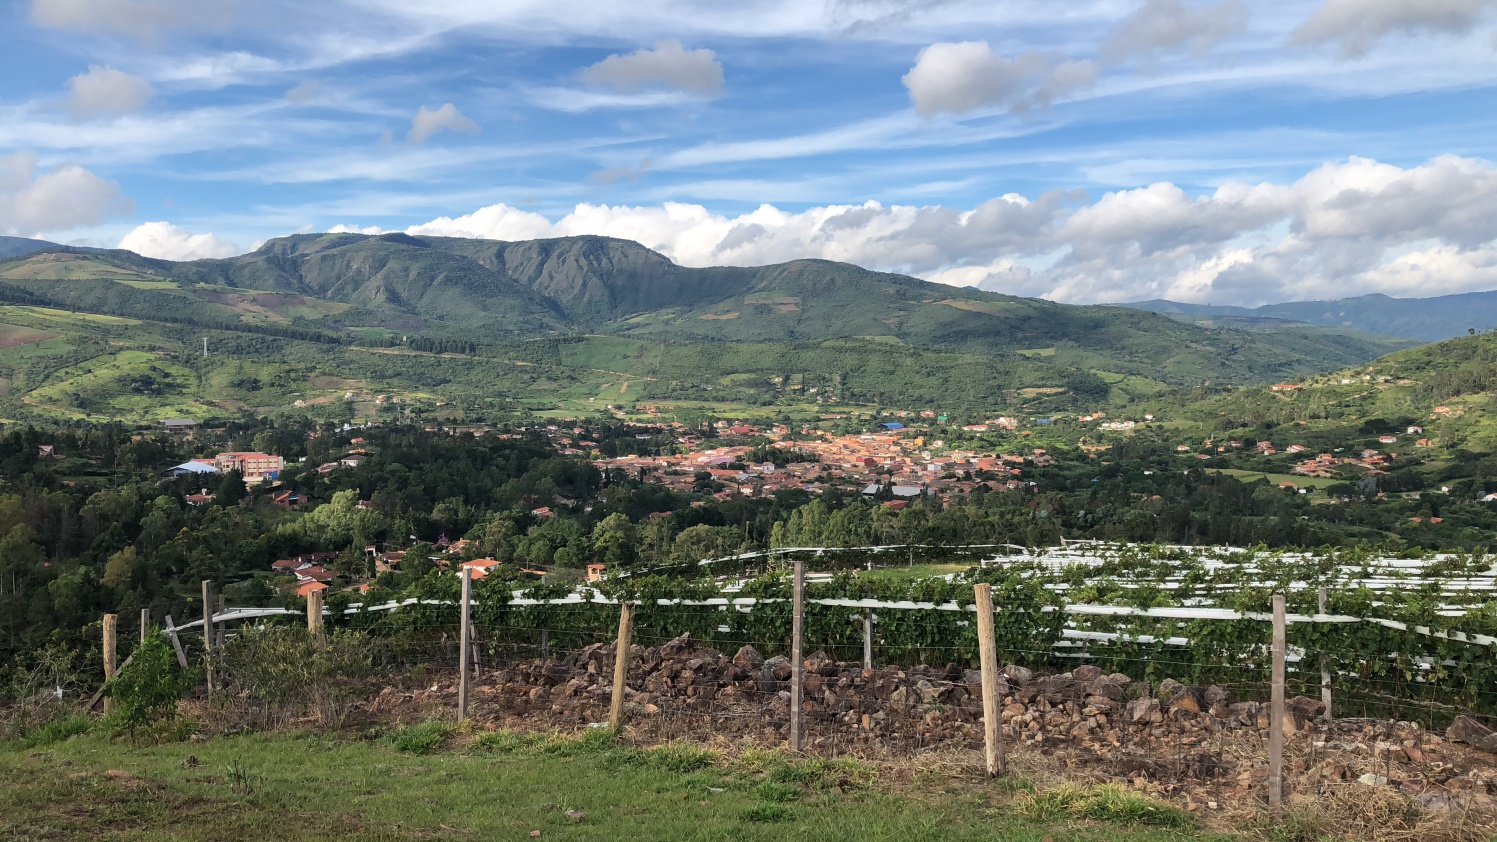 A view of the town of Samaipata from Bodega Uvairenda, a producer of elegant Bolivian Torrontés